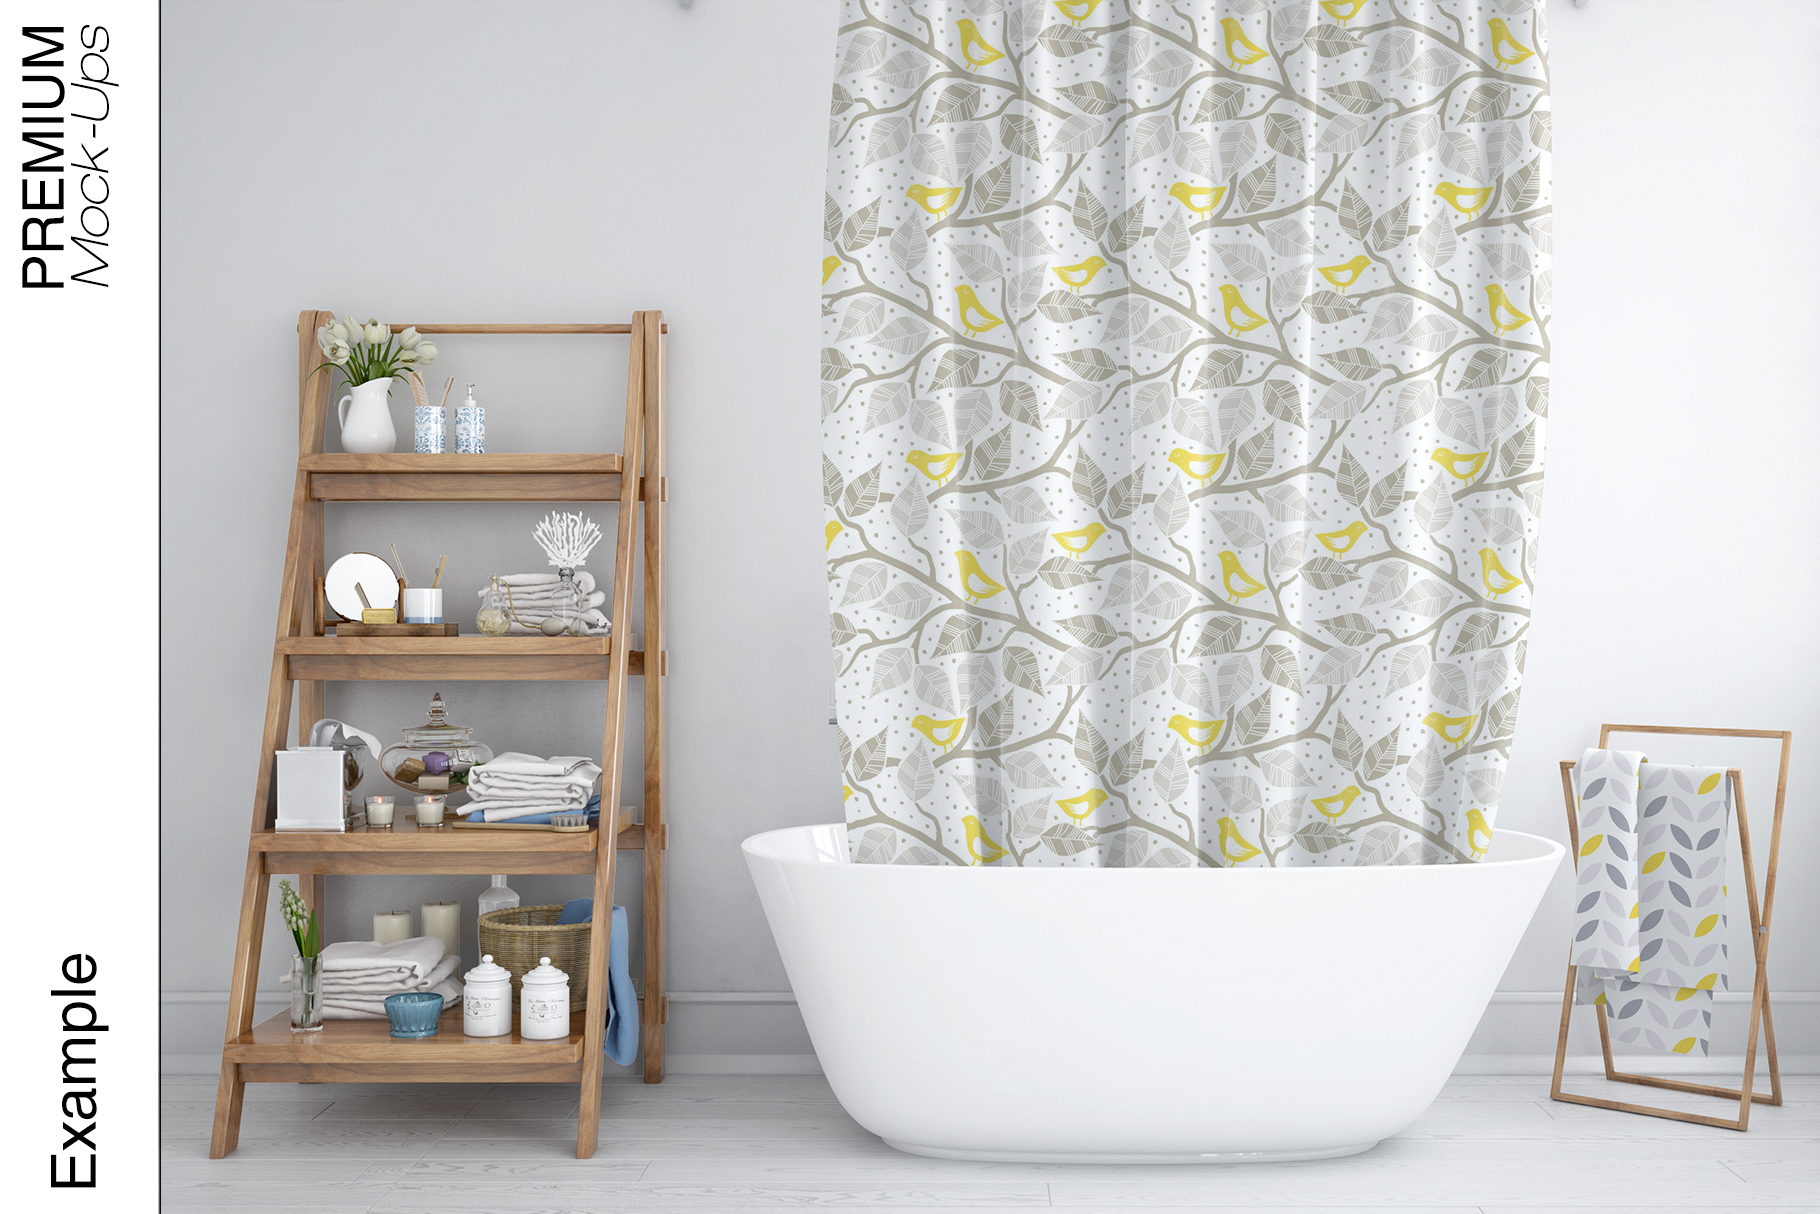 Bath Curtain Mockups example image 14